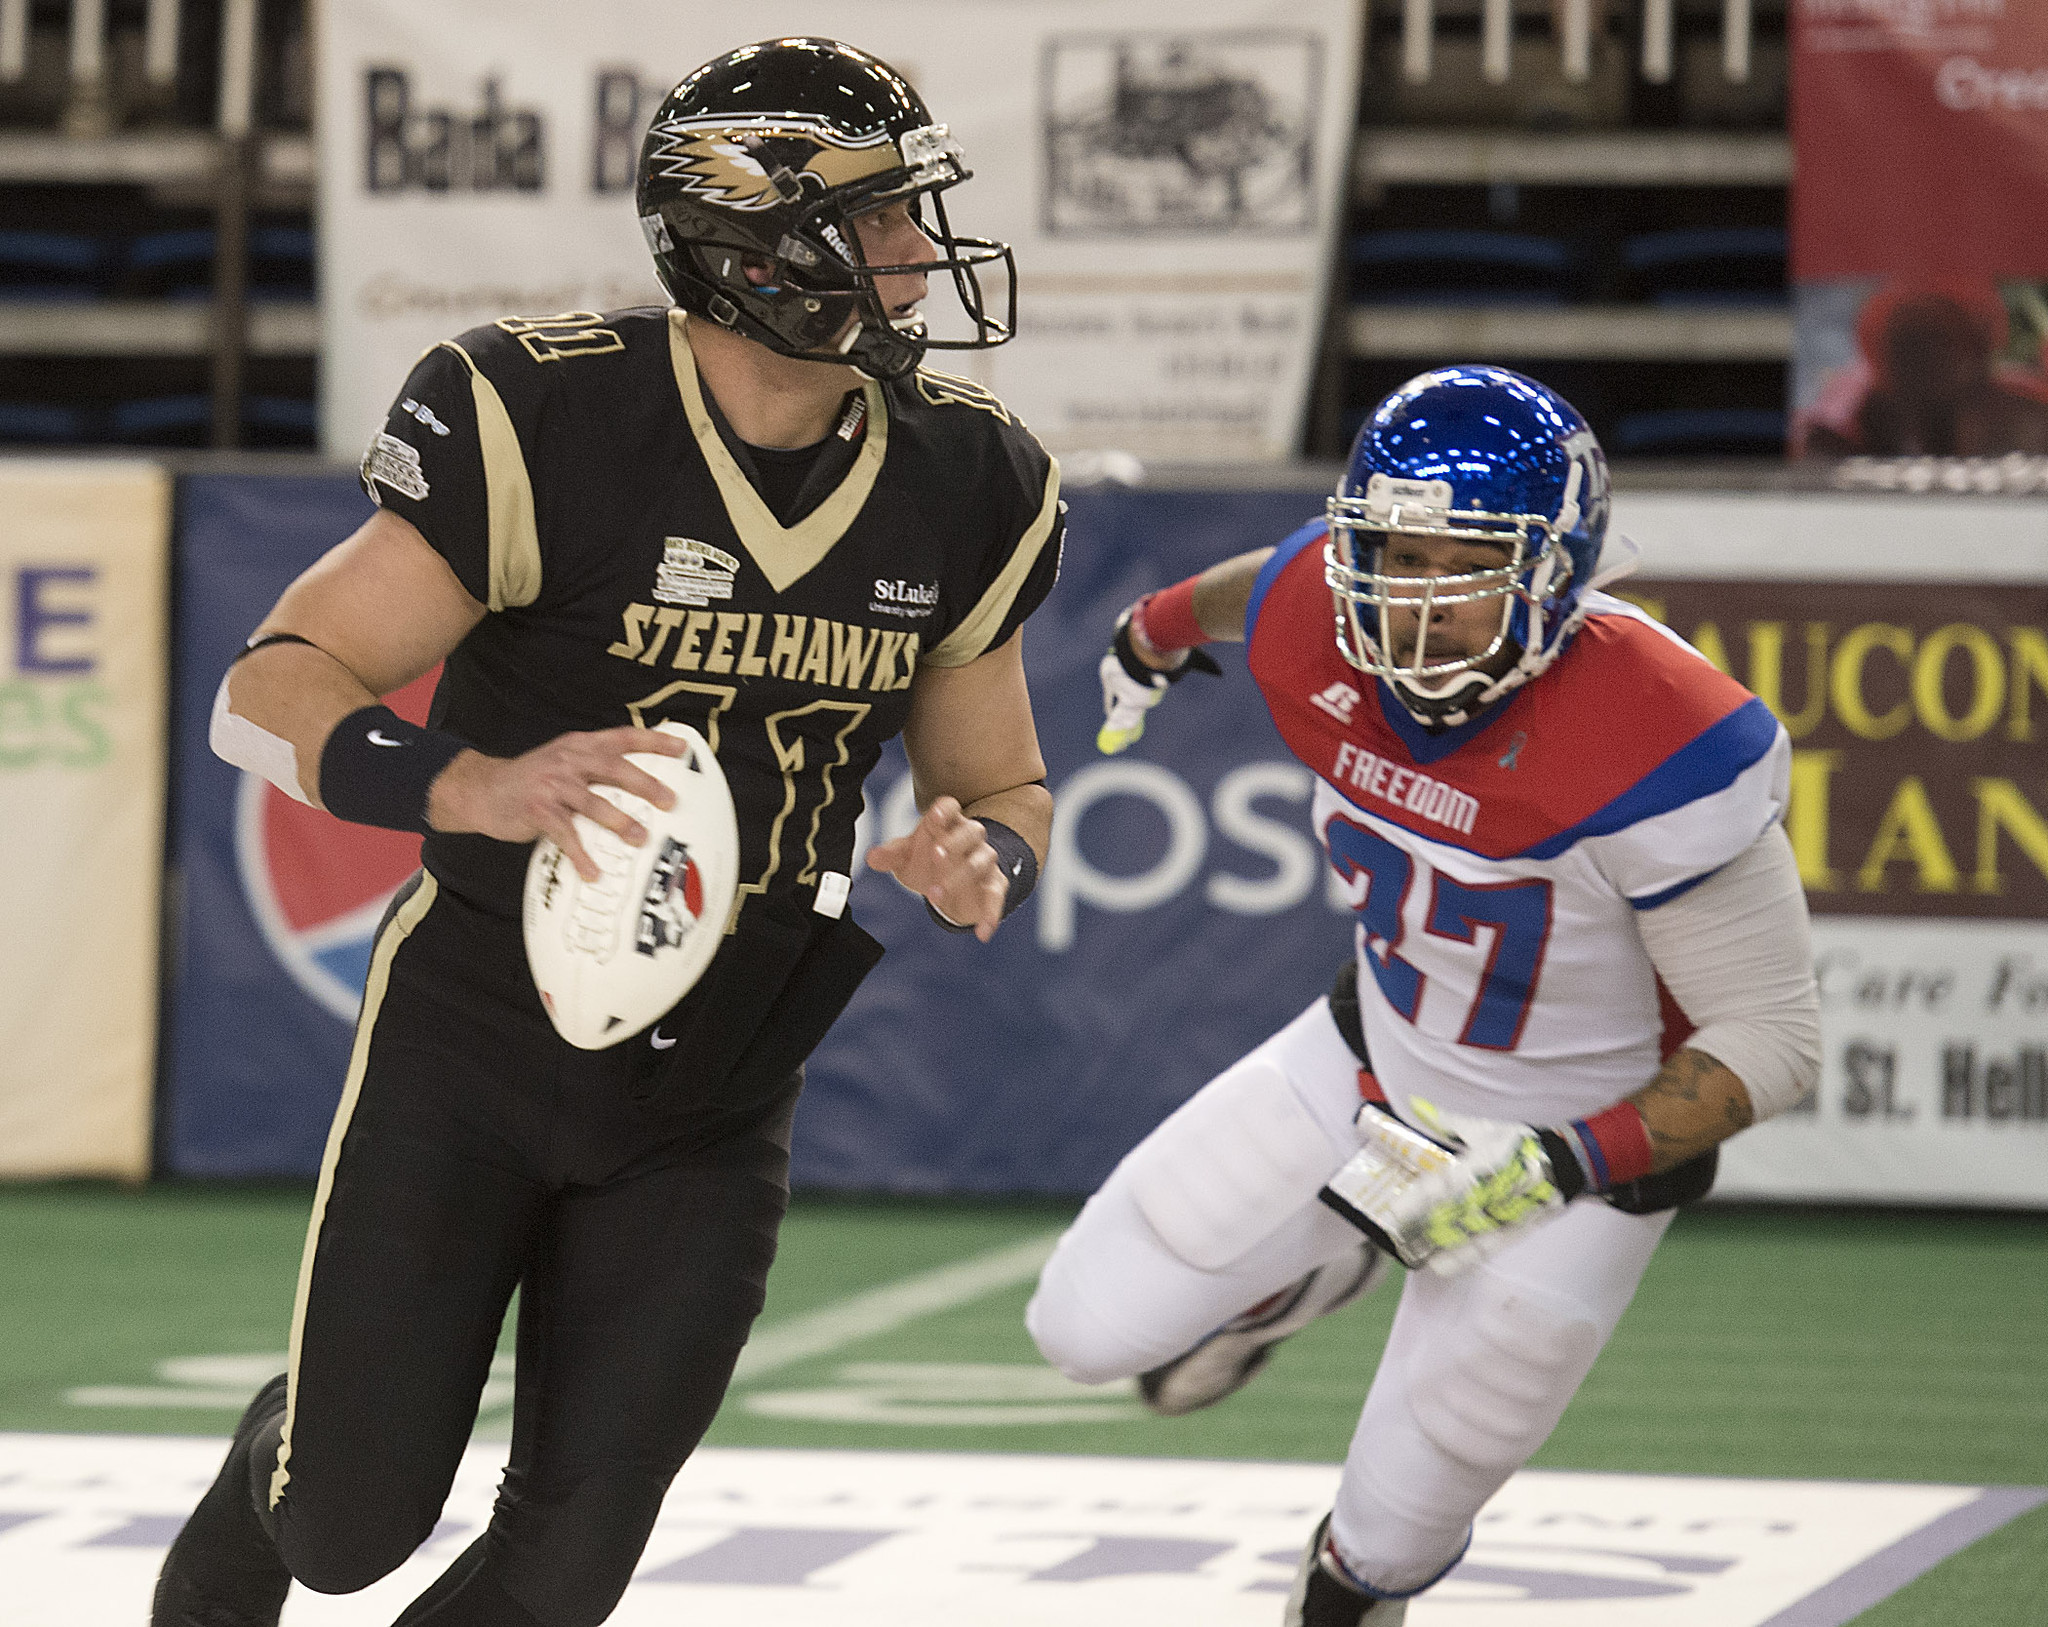 Pictures Lehigh Valley Steelhawks Vs Trenton Freedom The Morning Call